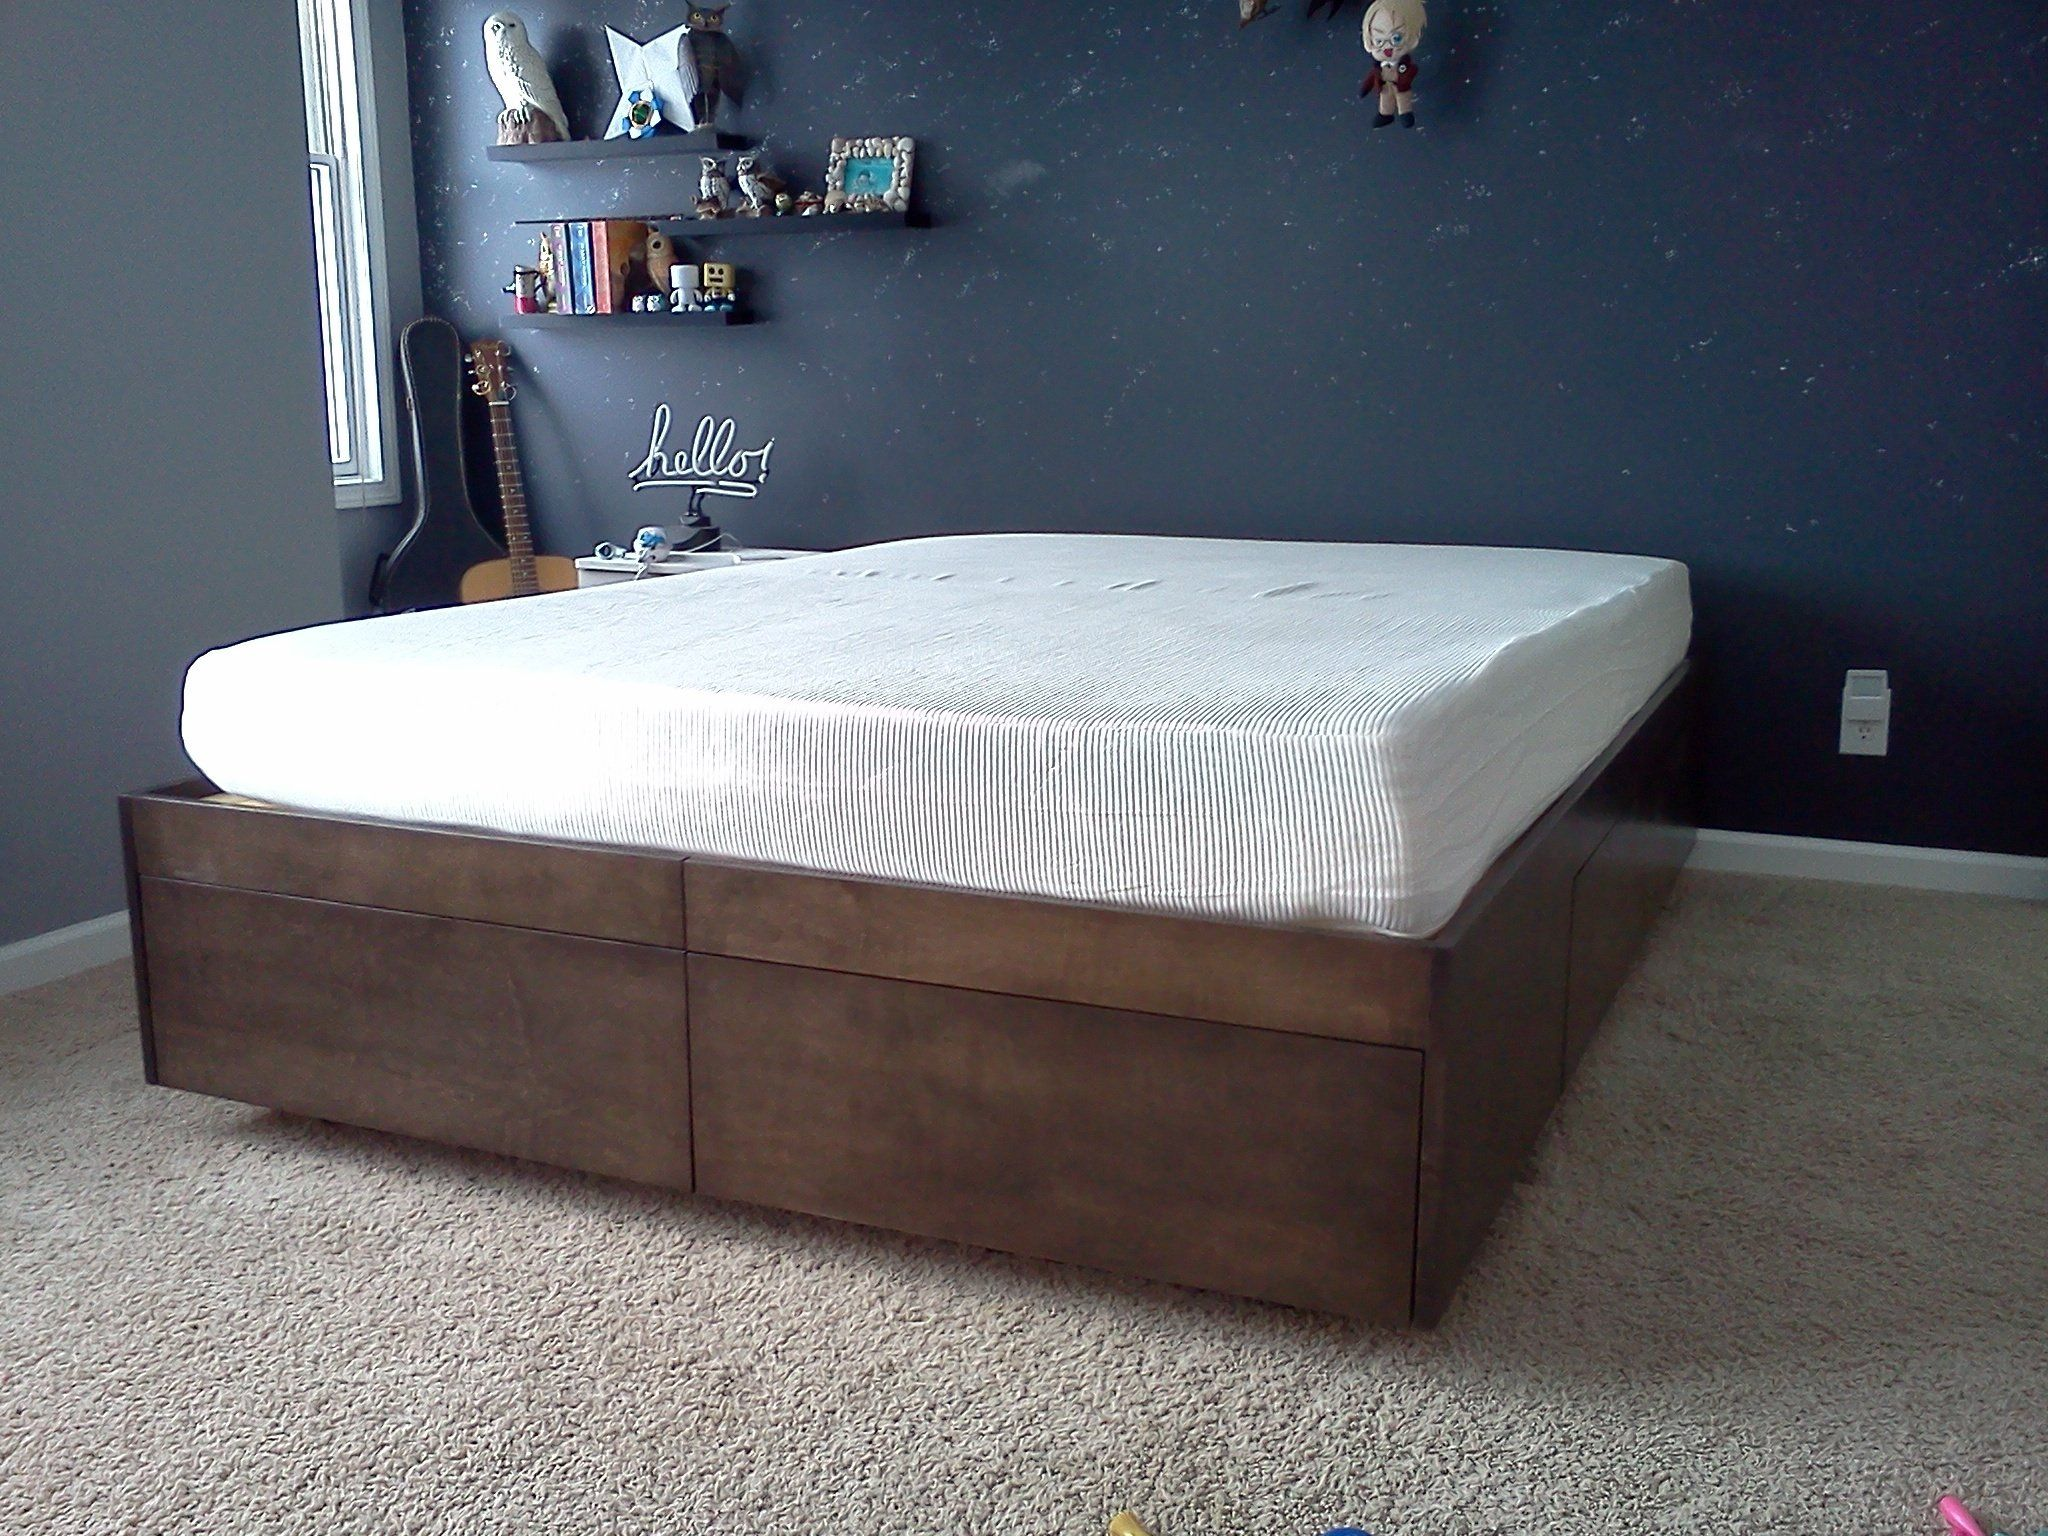 ikea frame headboard iron long tall platform side on me adult underneath splendid size and storage plans one near for with trundle lots low extra beds of w full base diy pedestal queen cute frames drawers bed double stunning twin bedding oak metal